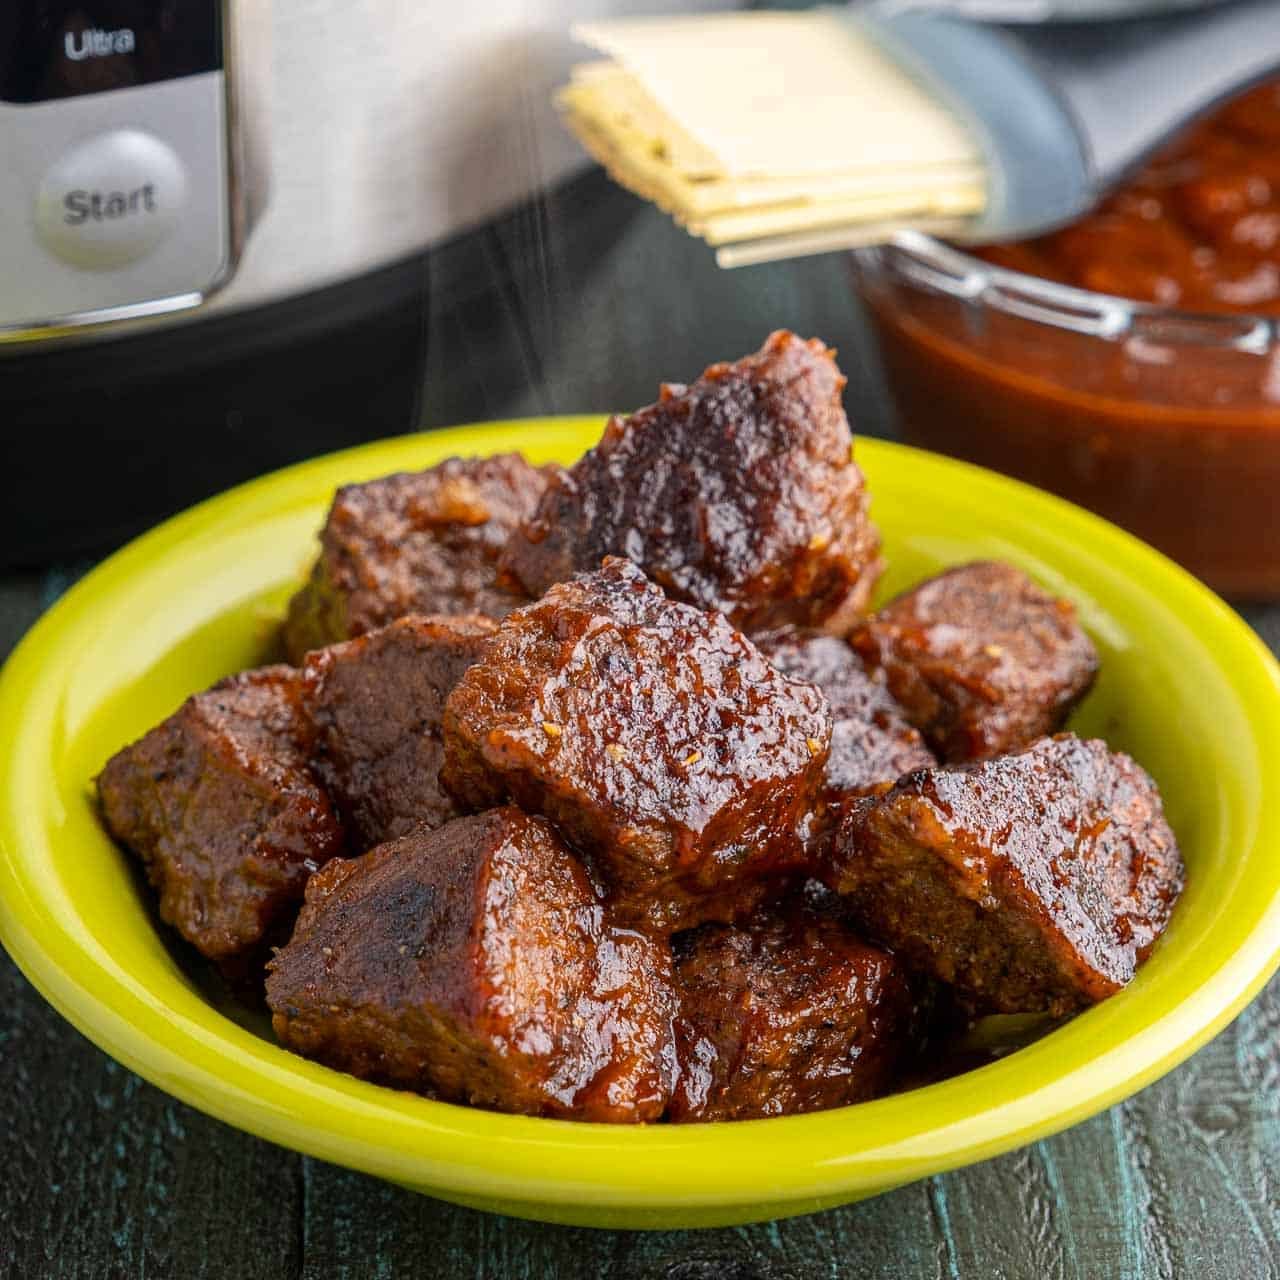 A bowl full of cooked brisket cubes, glazed with barbecue sauce, with an Instant Pot and a bowl of barbecue sauce in the background